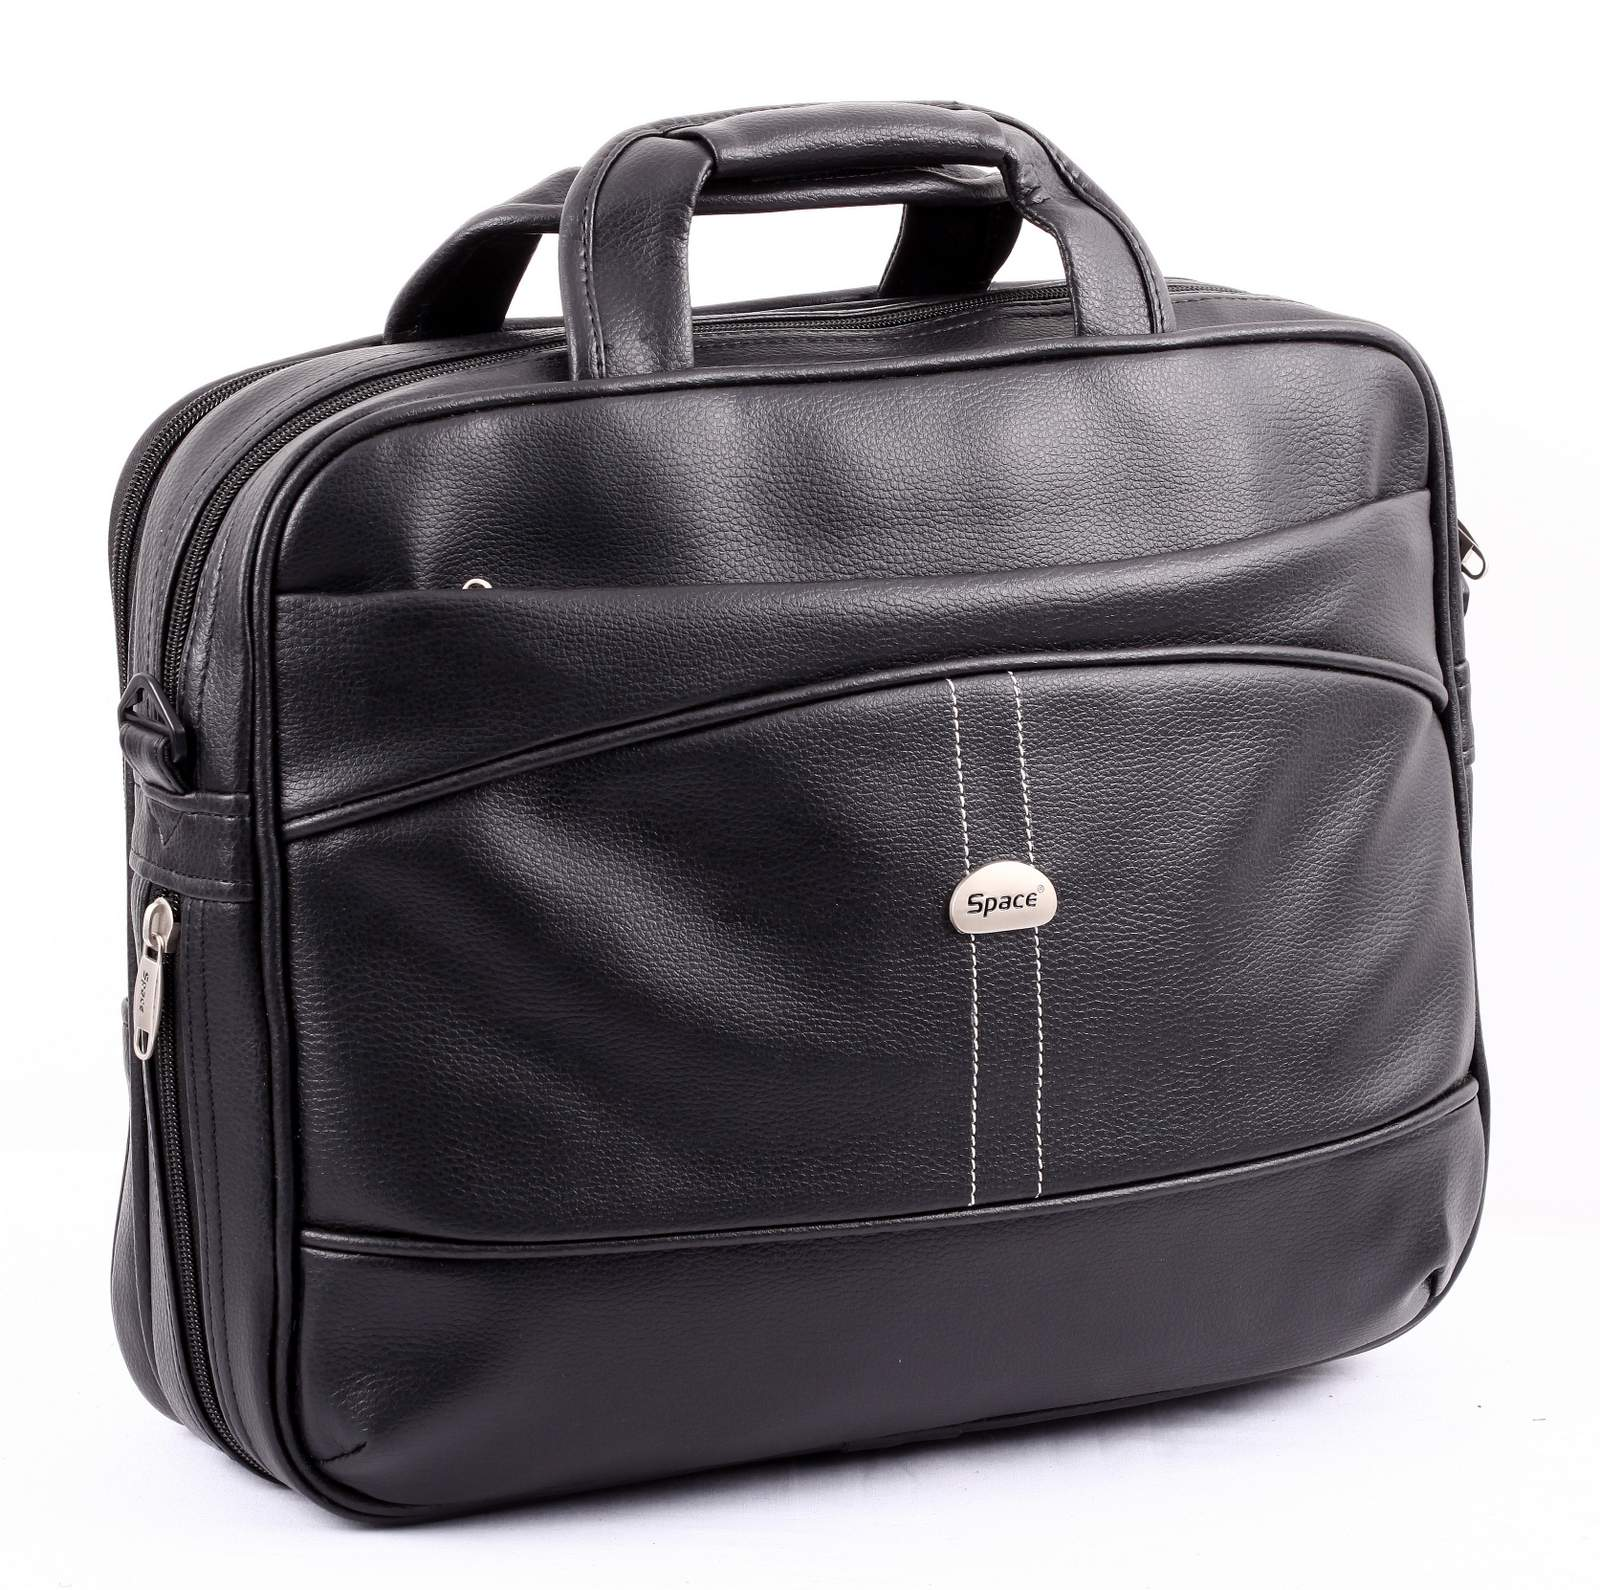 Space Leather Laptop Bag in Bangalore